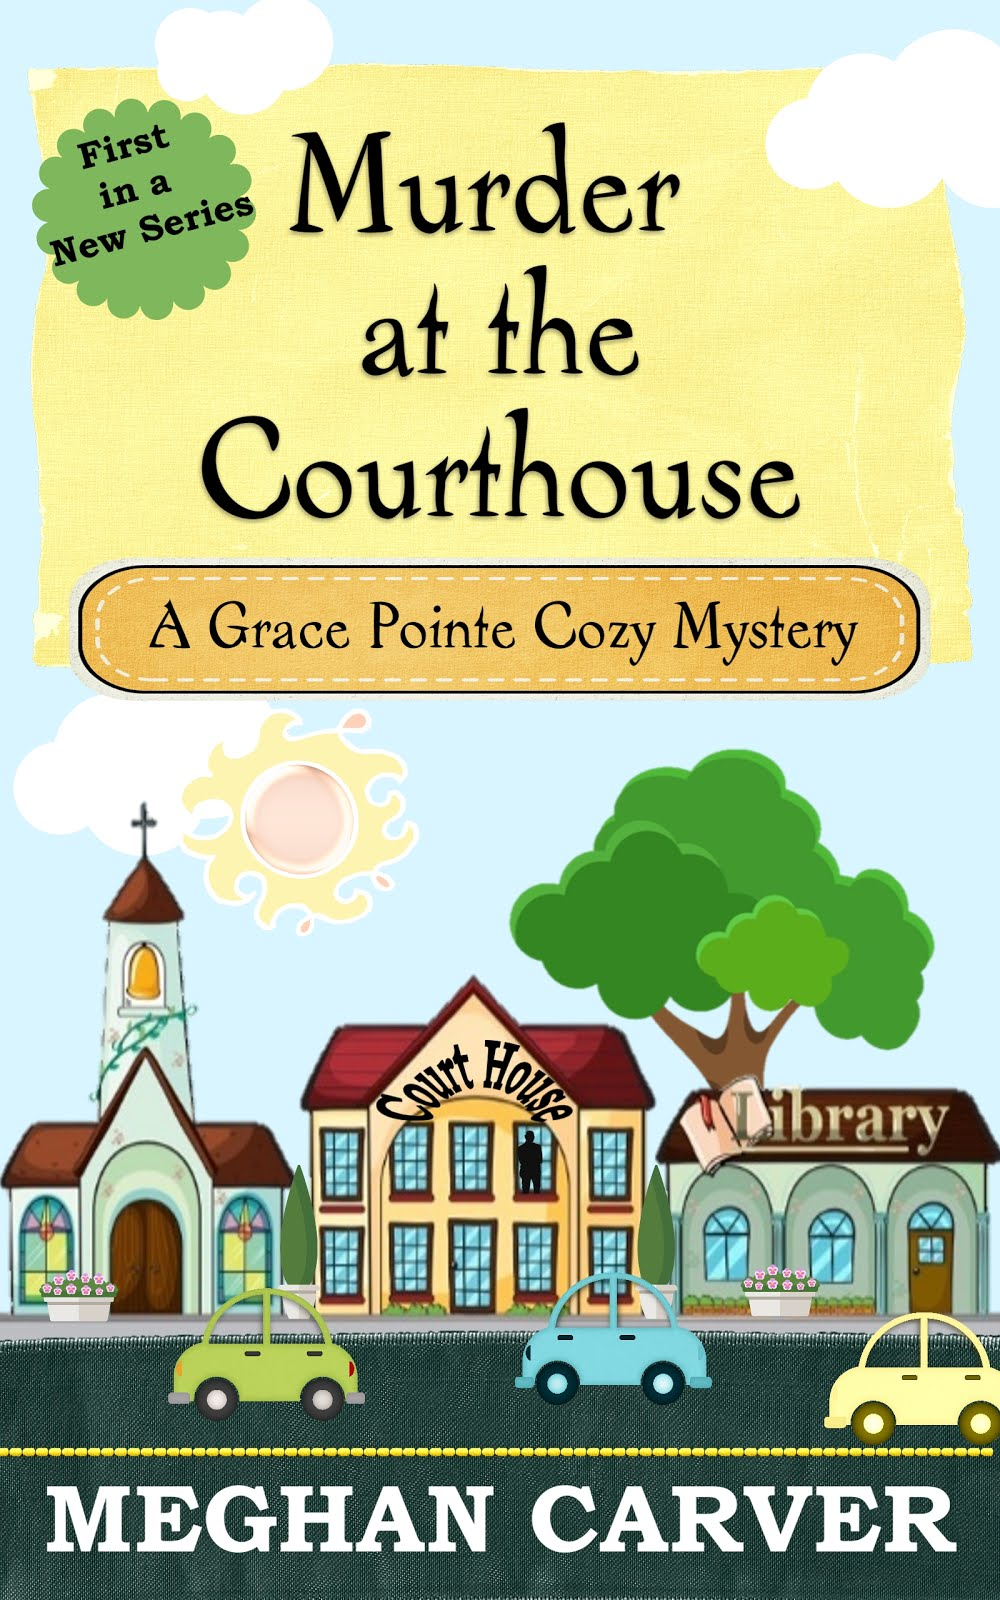 My new cozy mystery ~